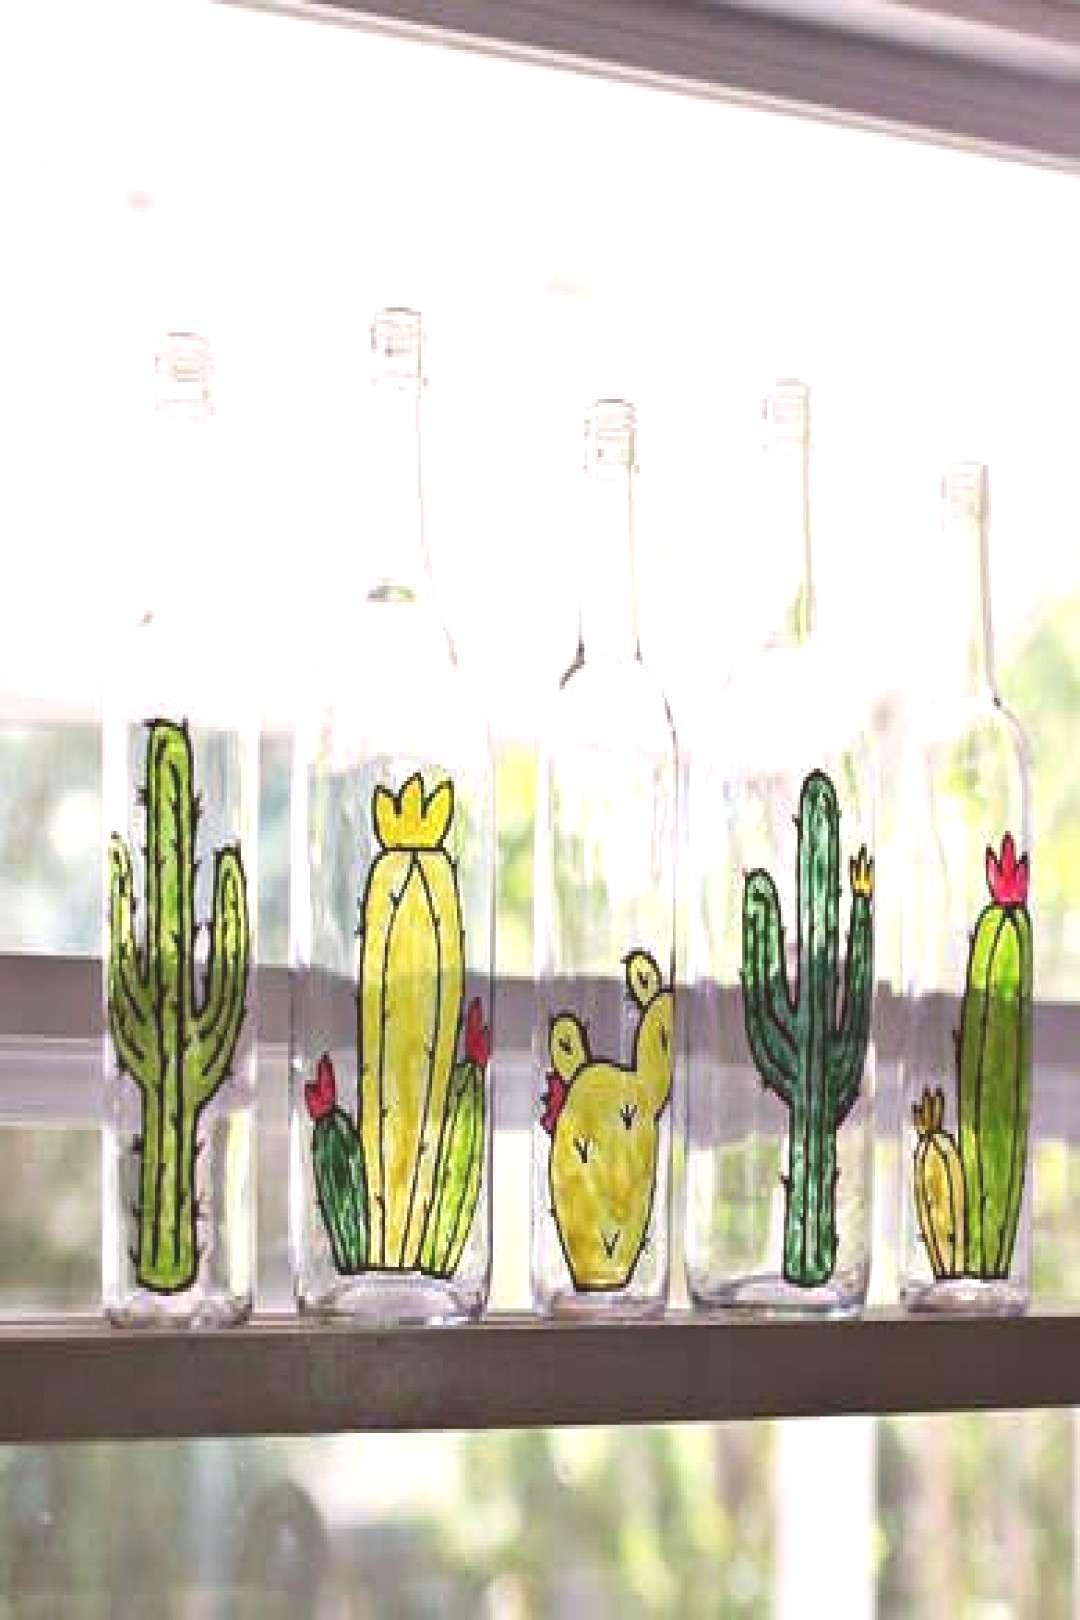 DIY Painted Bottles.... could be great XMas gifts for friends. They could put bracelets on the neck